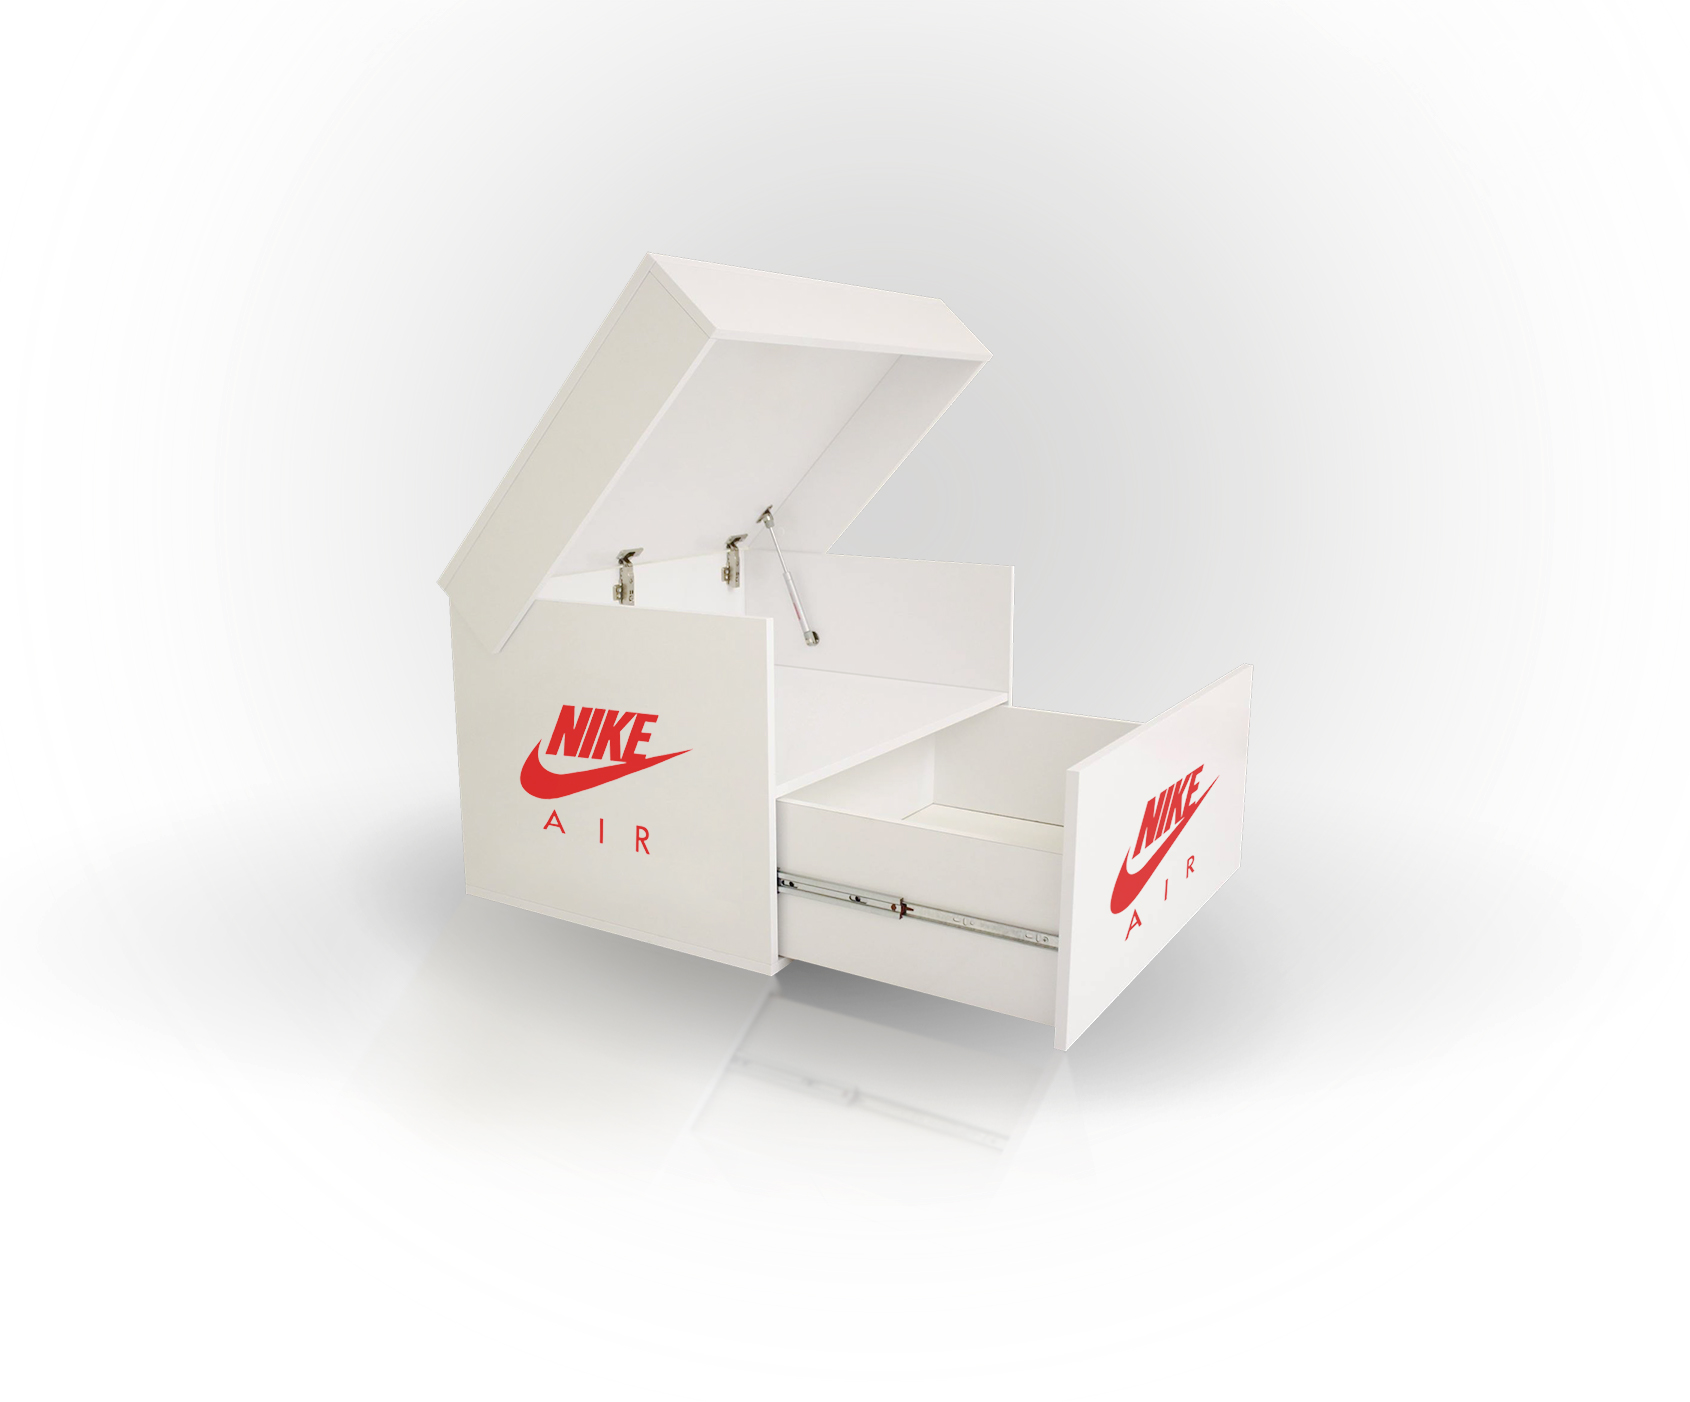 Nike Air Max Sneaker Box